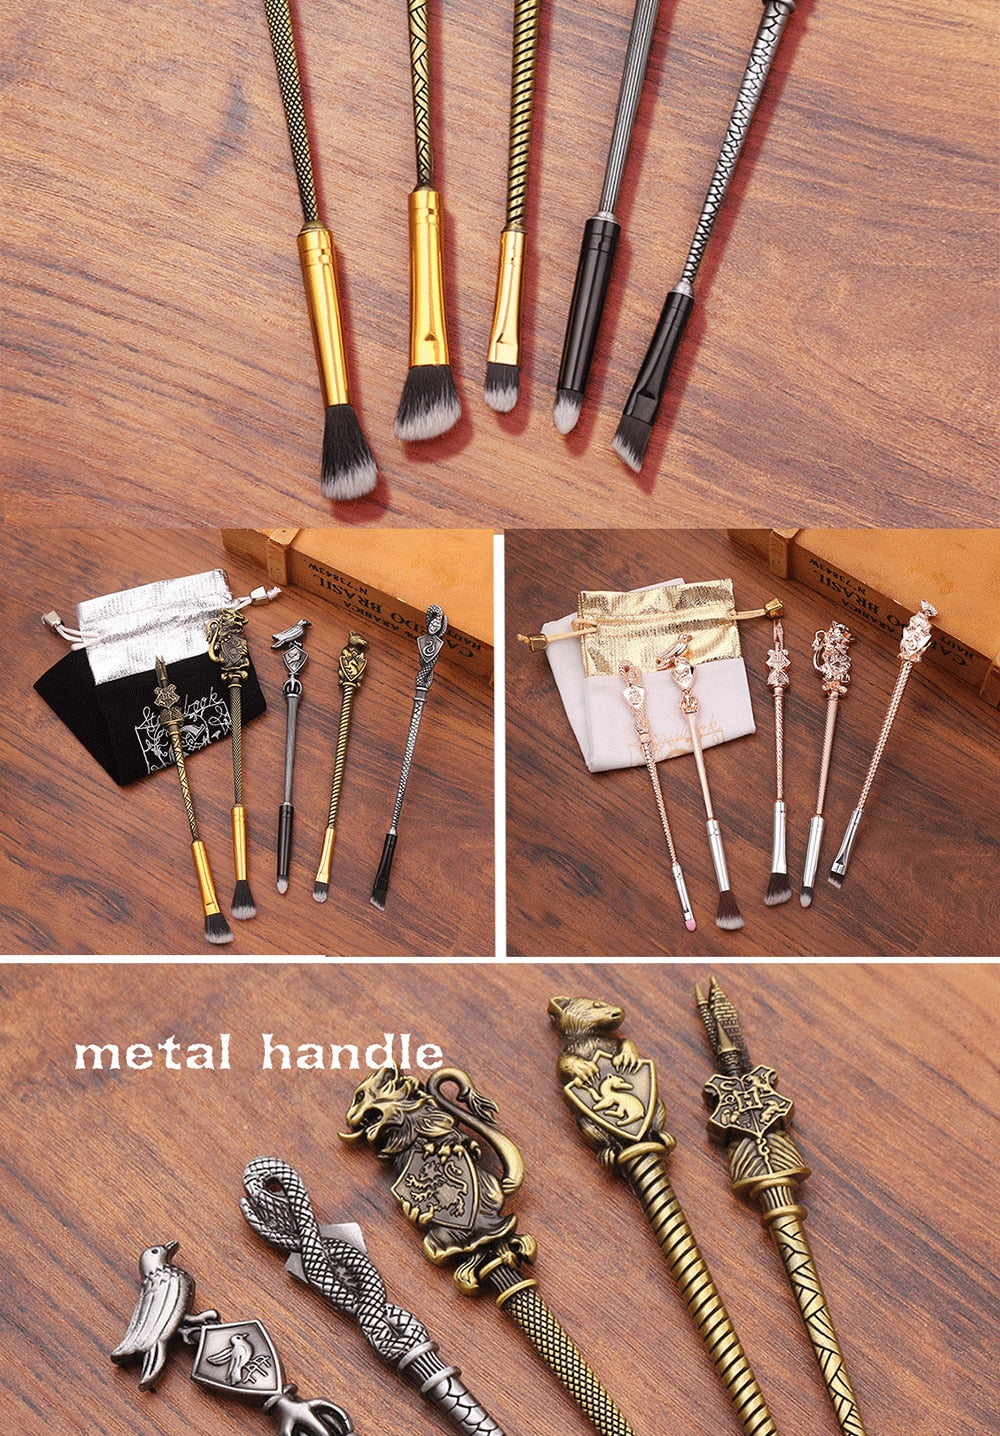 Harry Potter Inspired  Makeup Brush Set - Panashe Essence